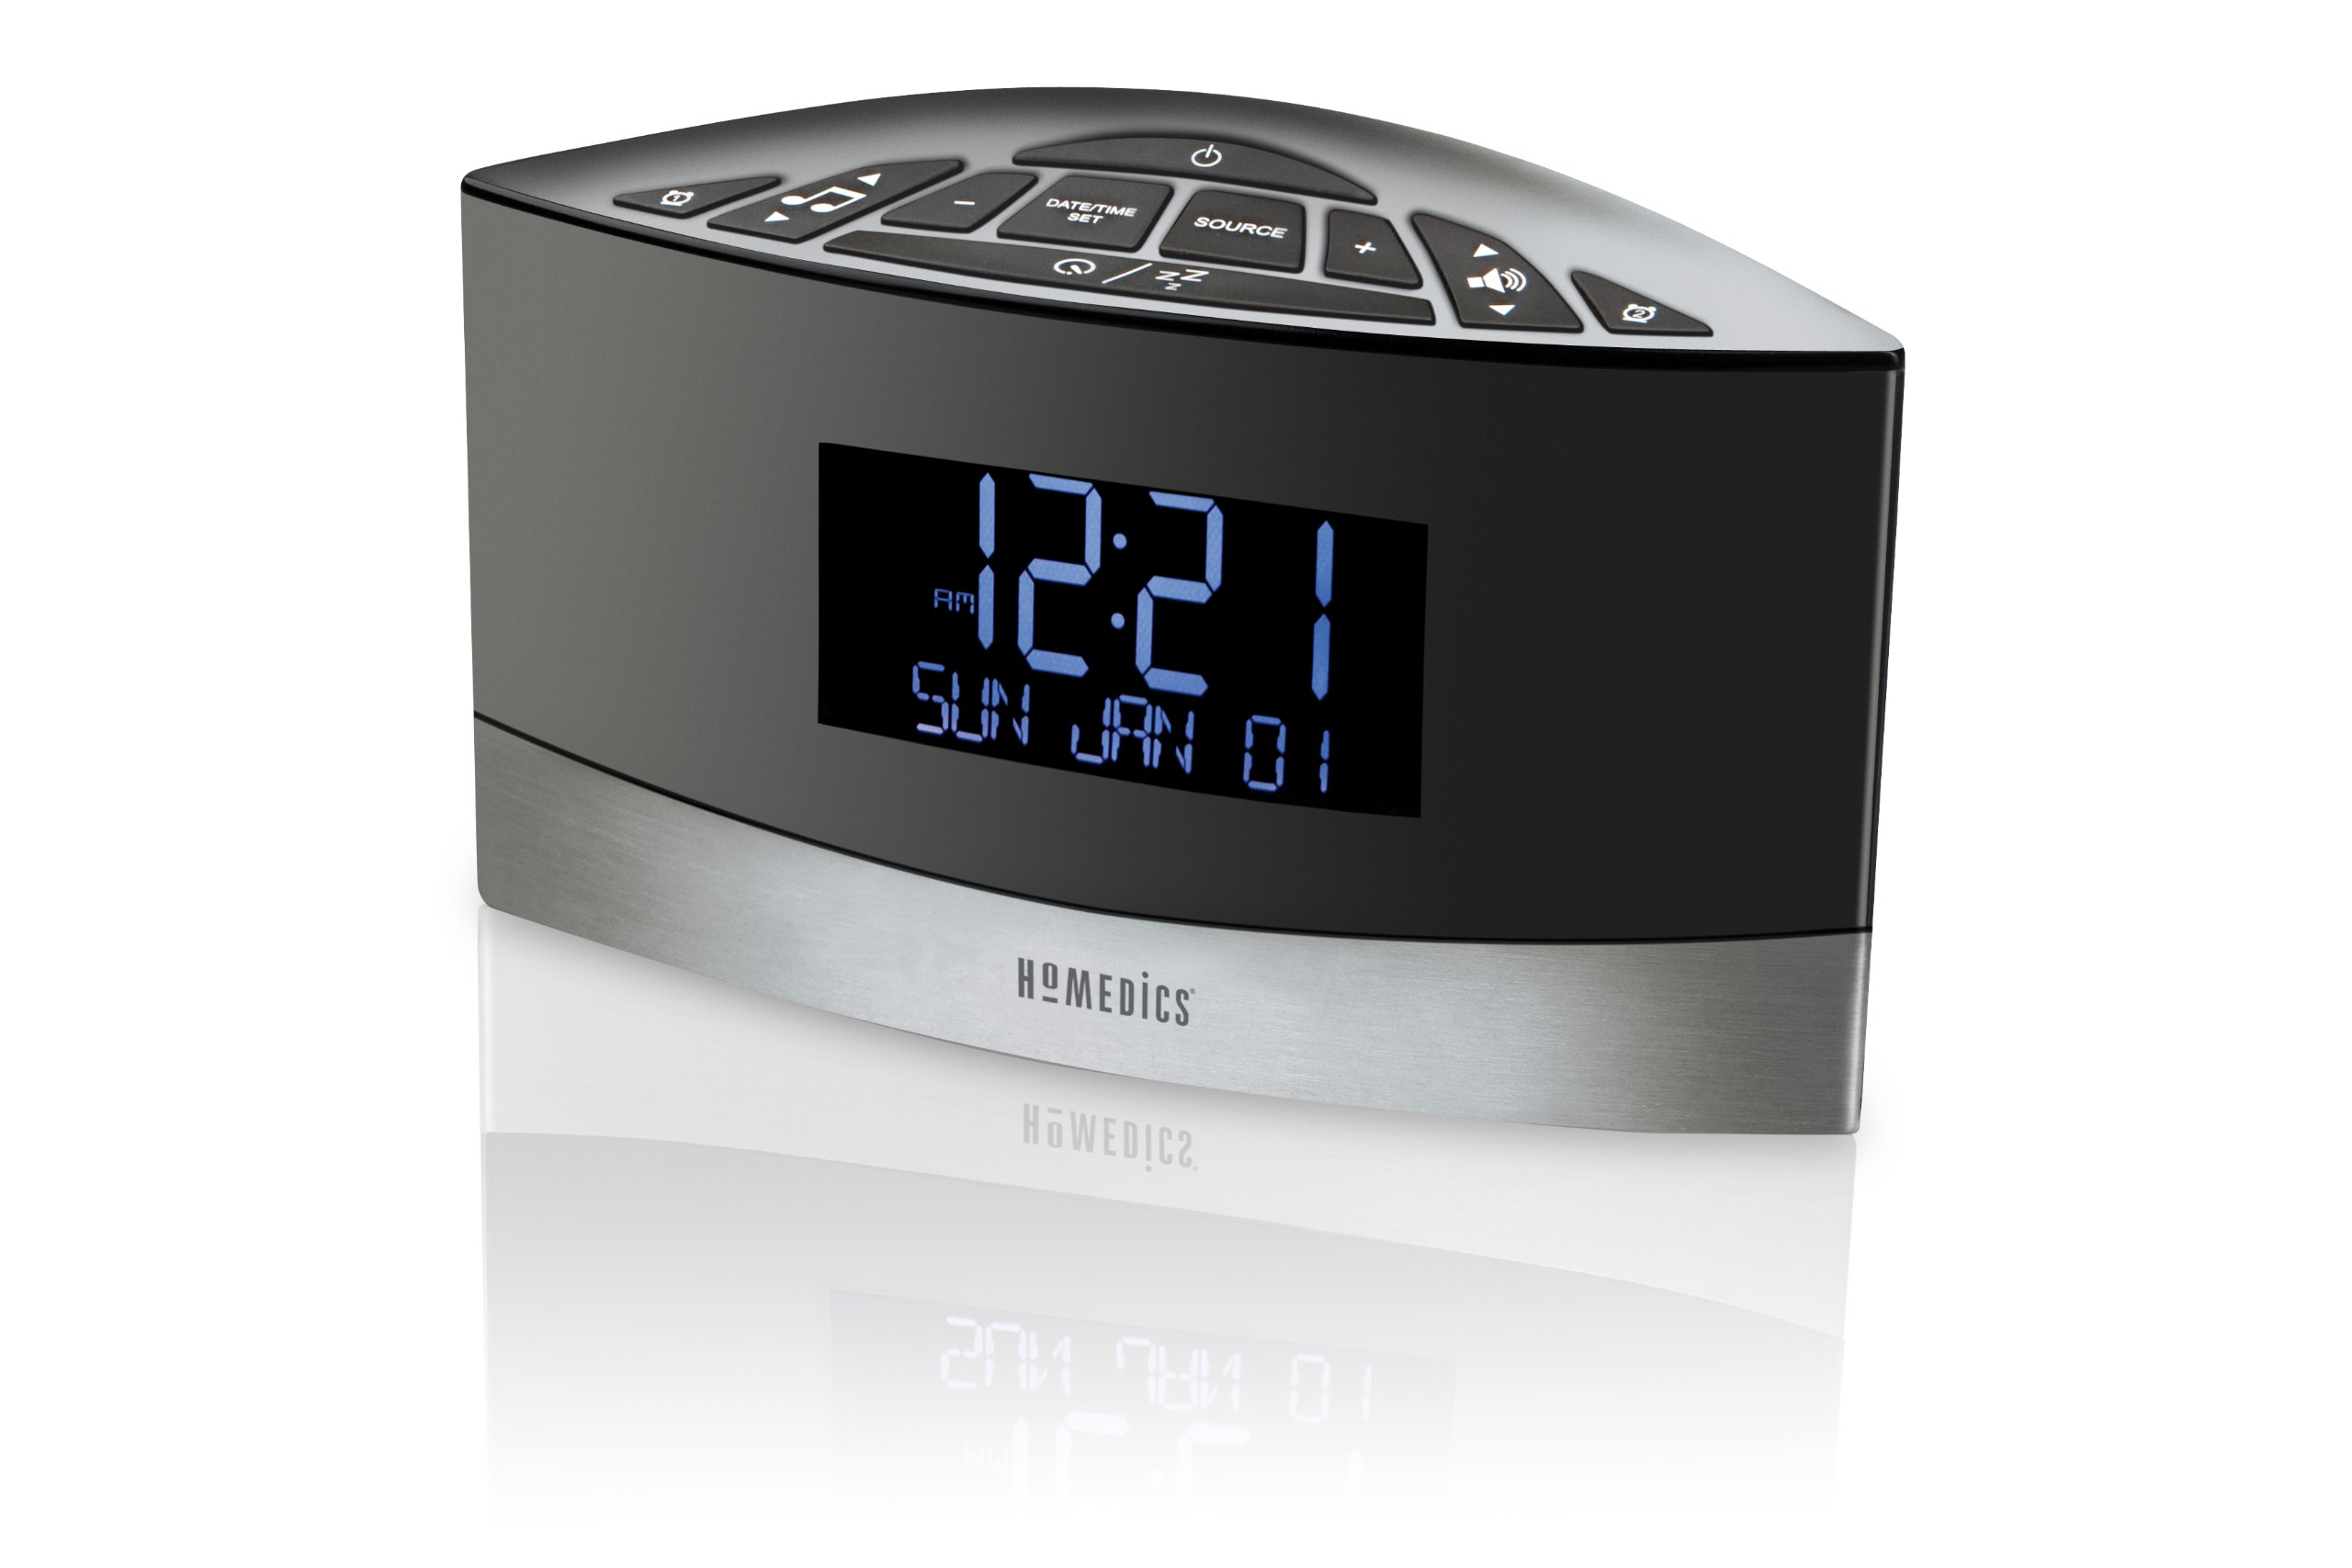 Homedics SS-5020 Sound Spa Premier FM Clock Radio with 20 Relaxation Sounds by Homedics